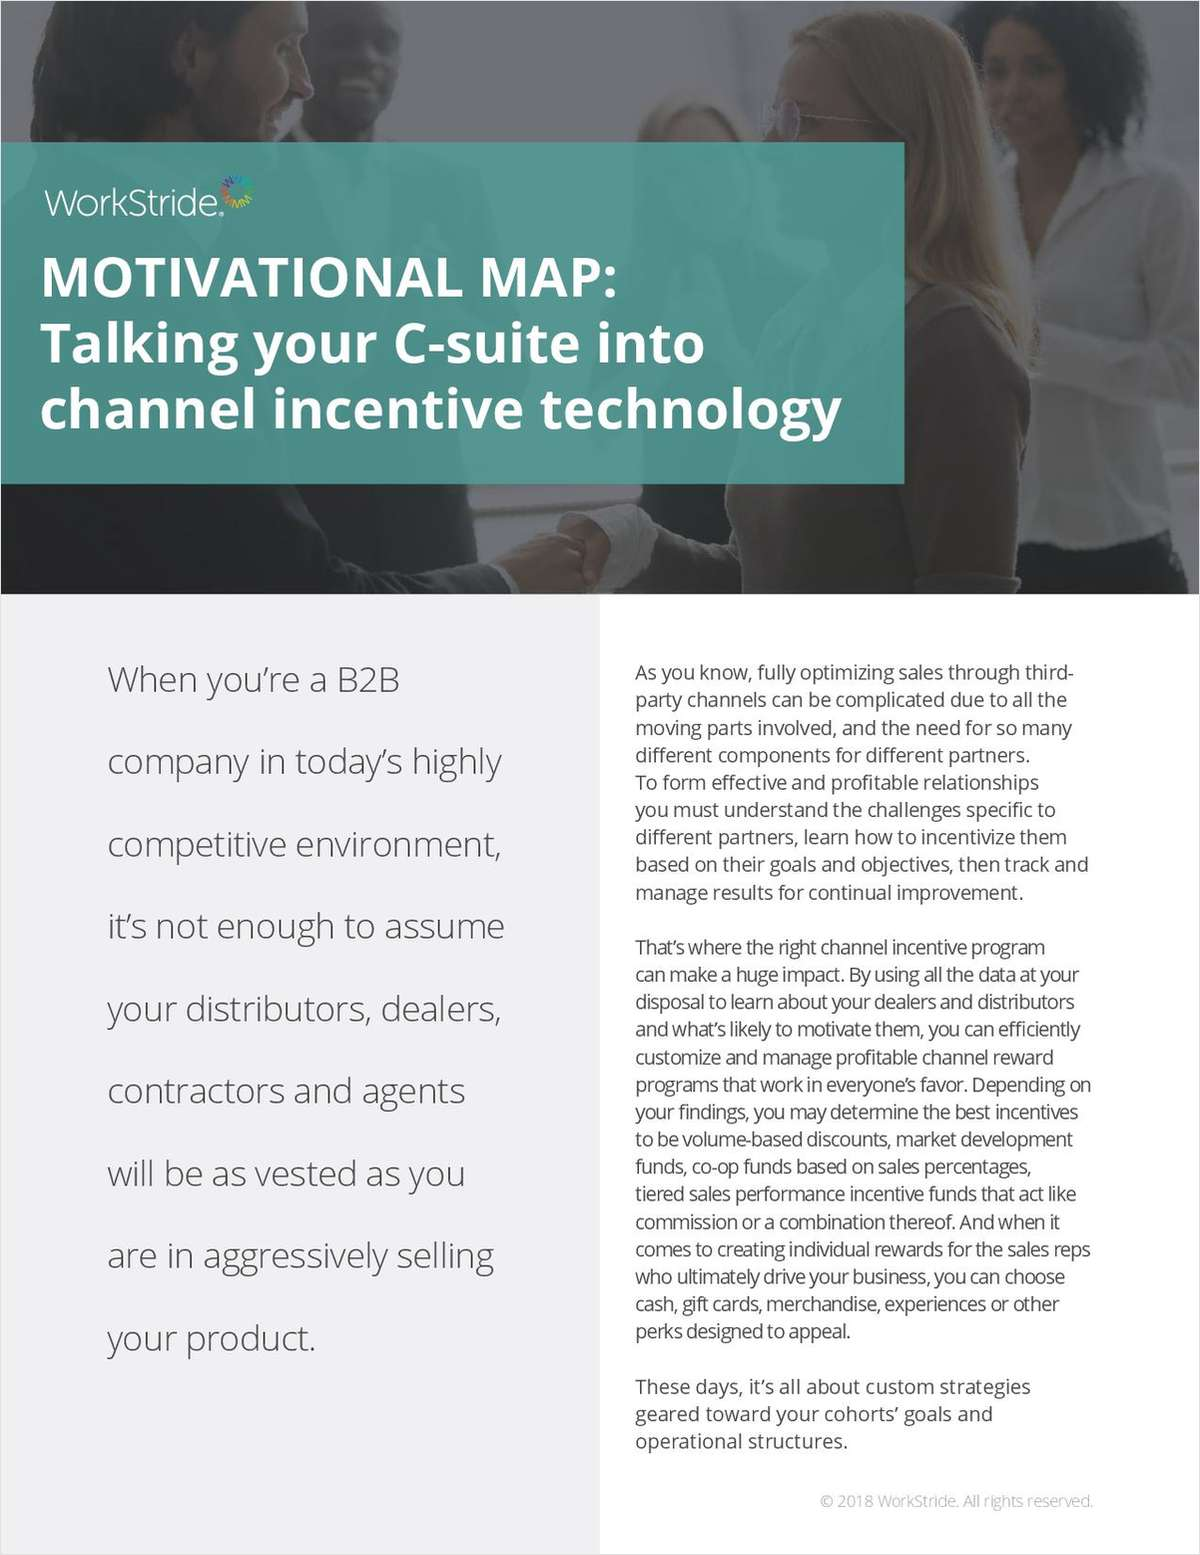 Motivational Map: Talking your C-suite into Channel Incentive Technology